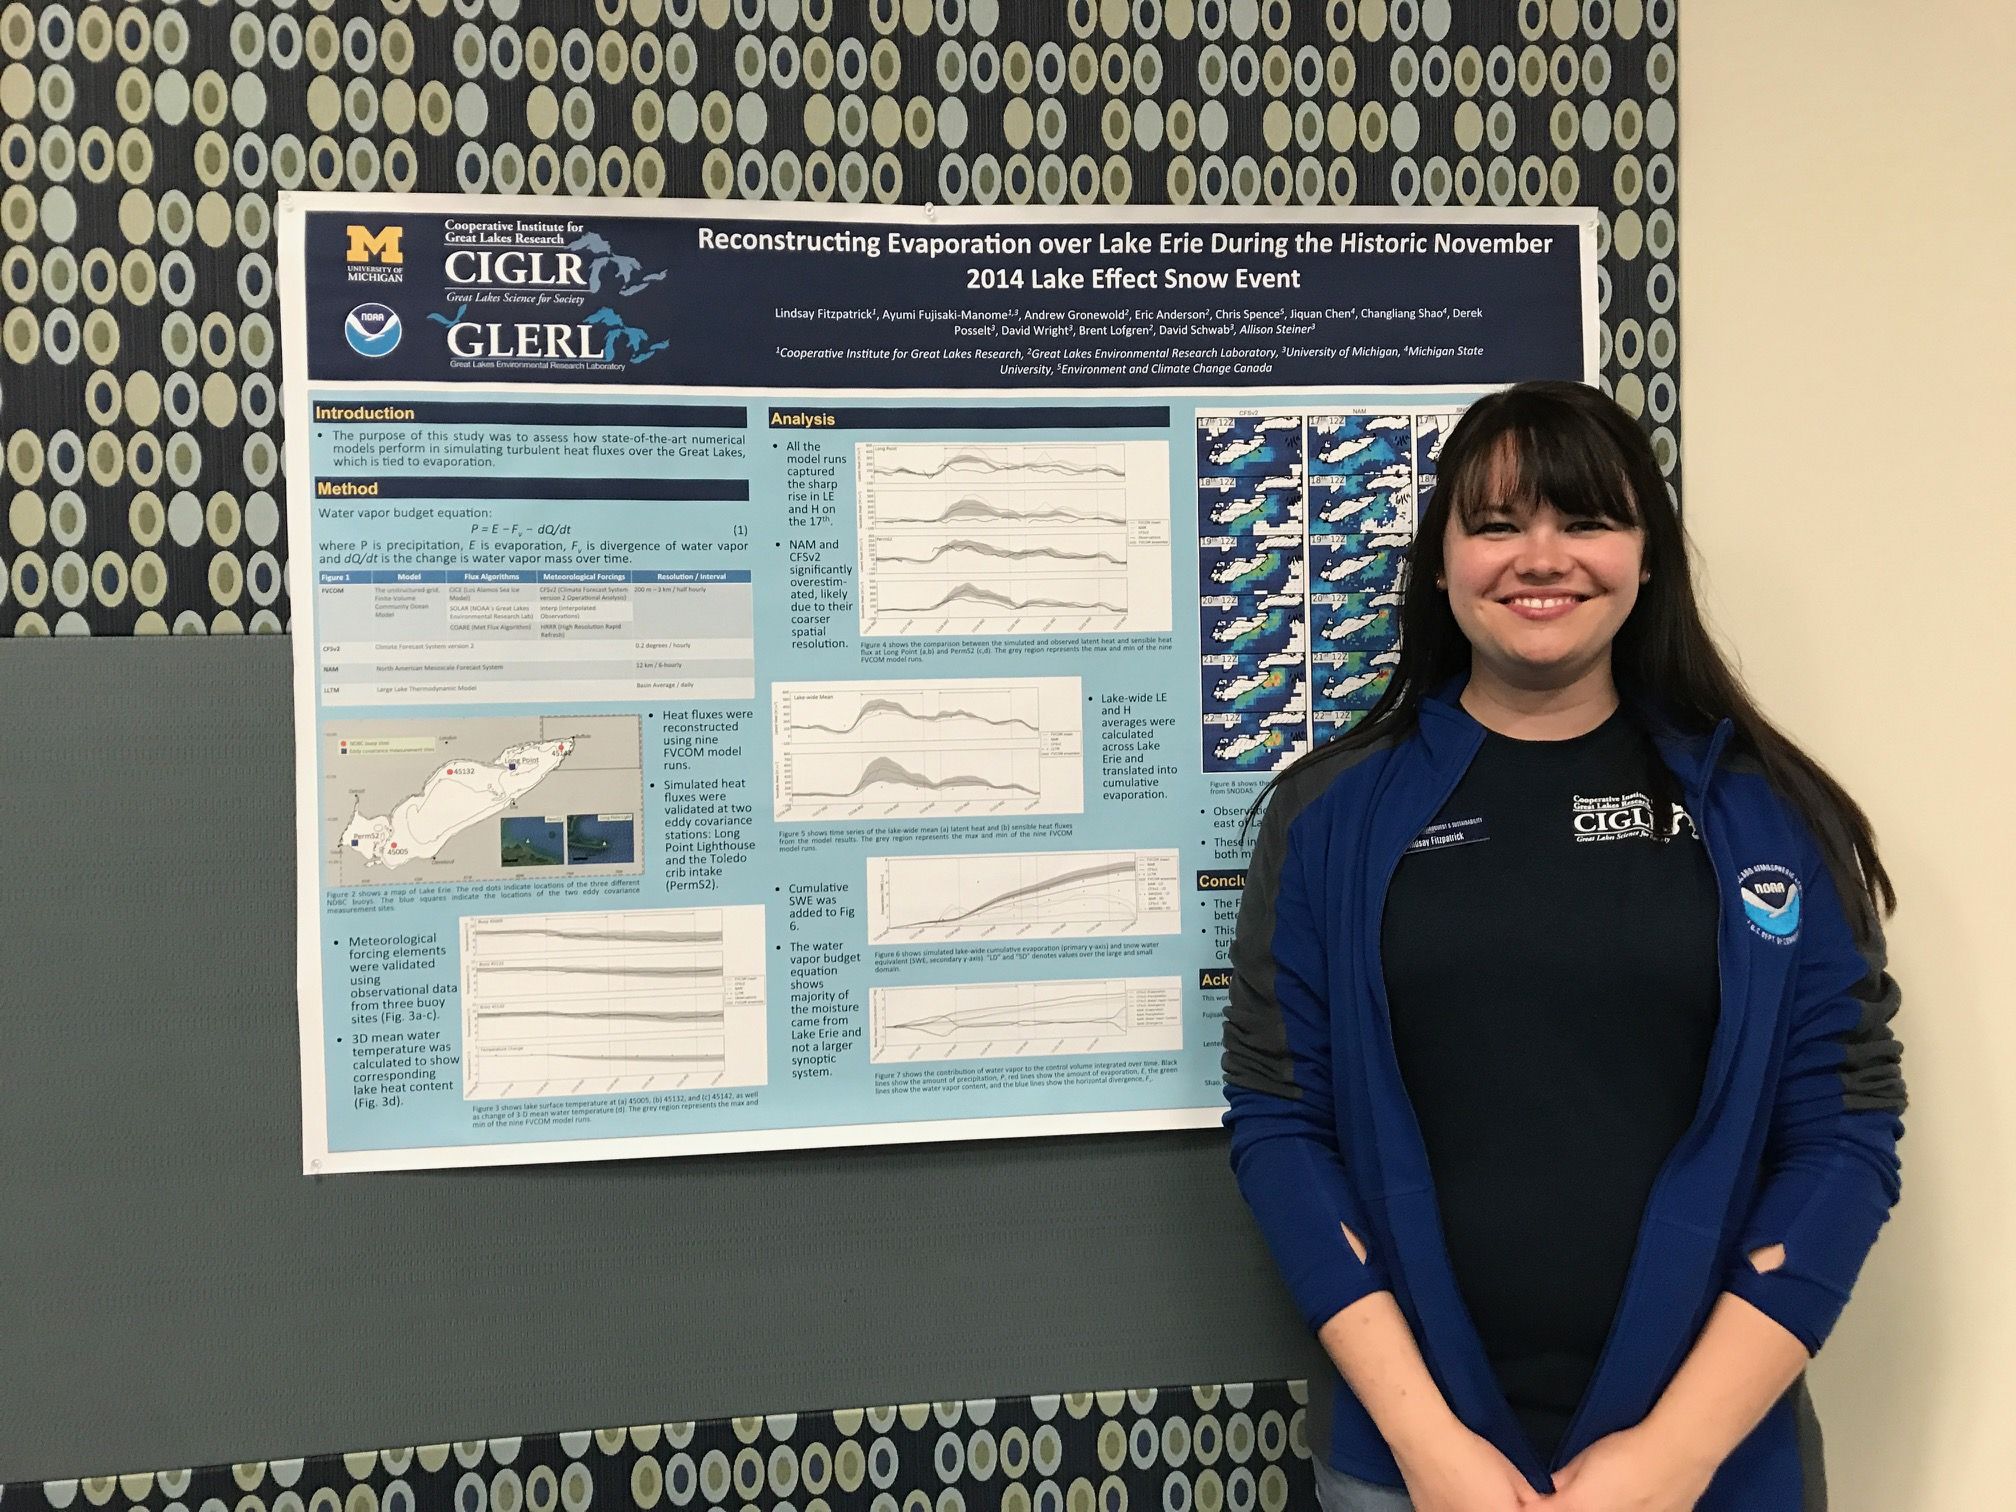 CIGLR's Lindsay Fitzpatrick presents her poster titled: Reconstructing Evaporation over Lake Erie During the Historic November 2014 lake Effect Snow Event. Photo Credit: Michele Wensman.